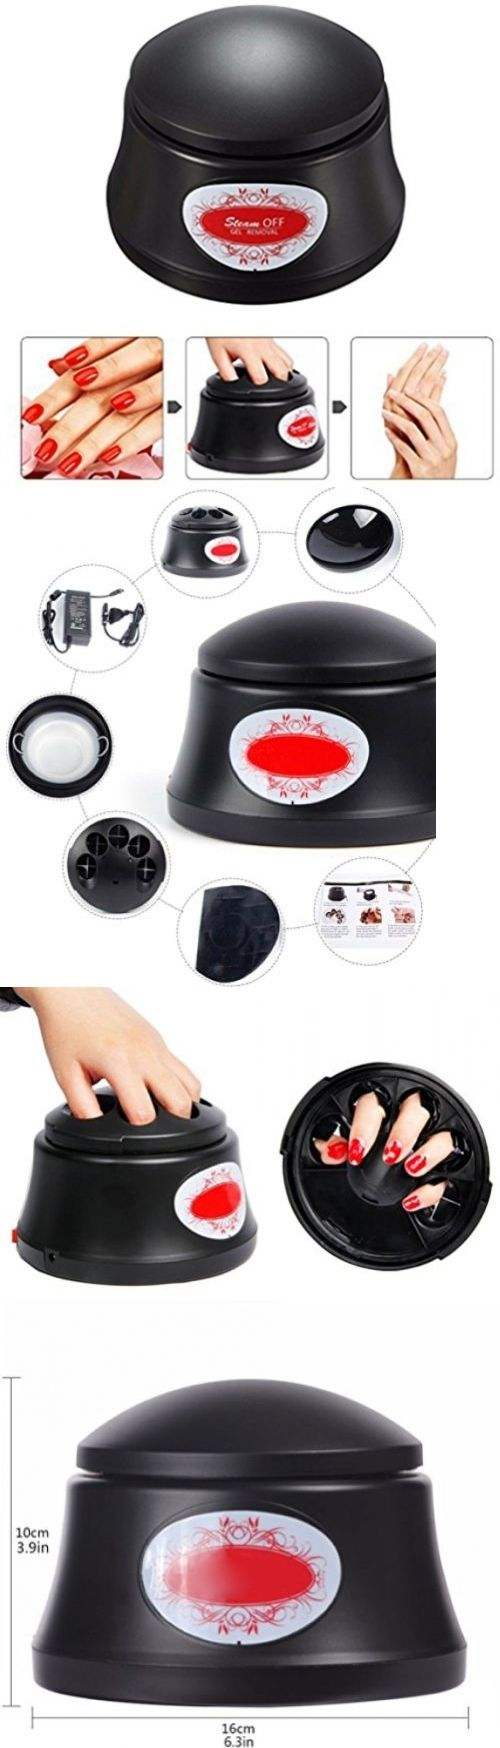 Nail Polish Remover: Bluetop Gel Nail Polish Remover Nail Resurrection Machine (Electric,Black) BUY IT NOW ONLY: $79.59